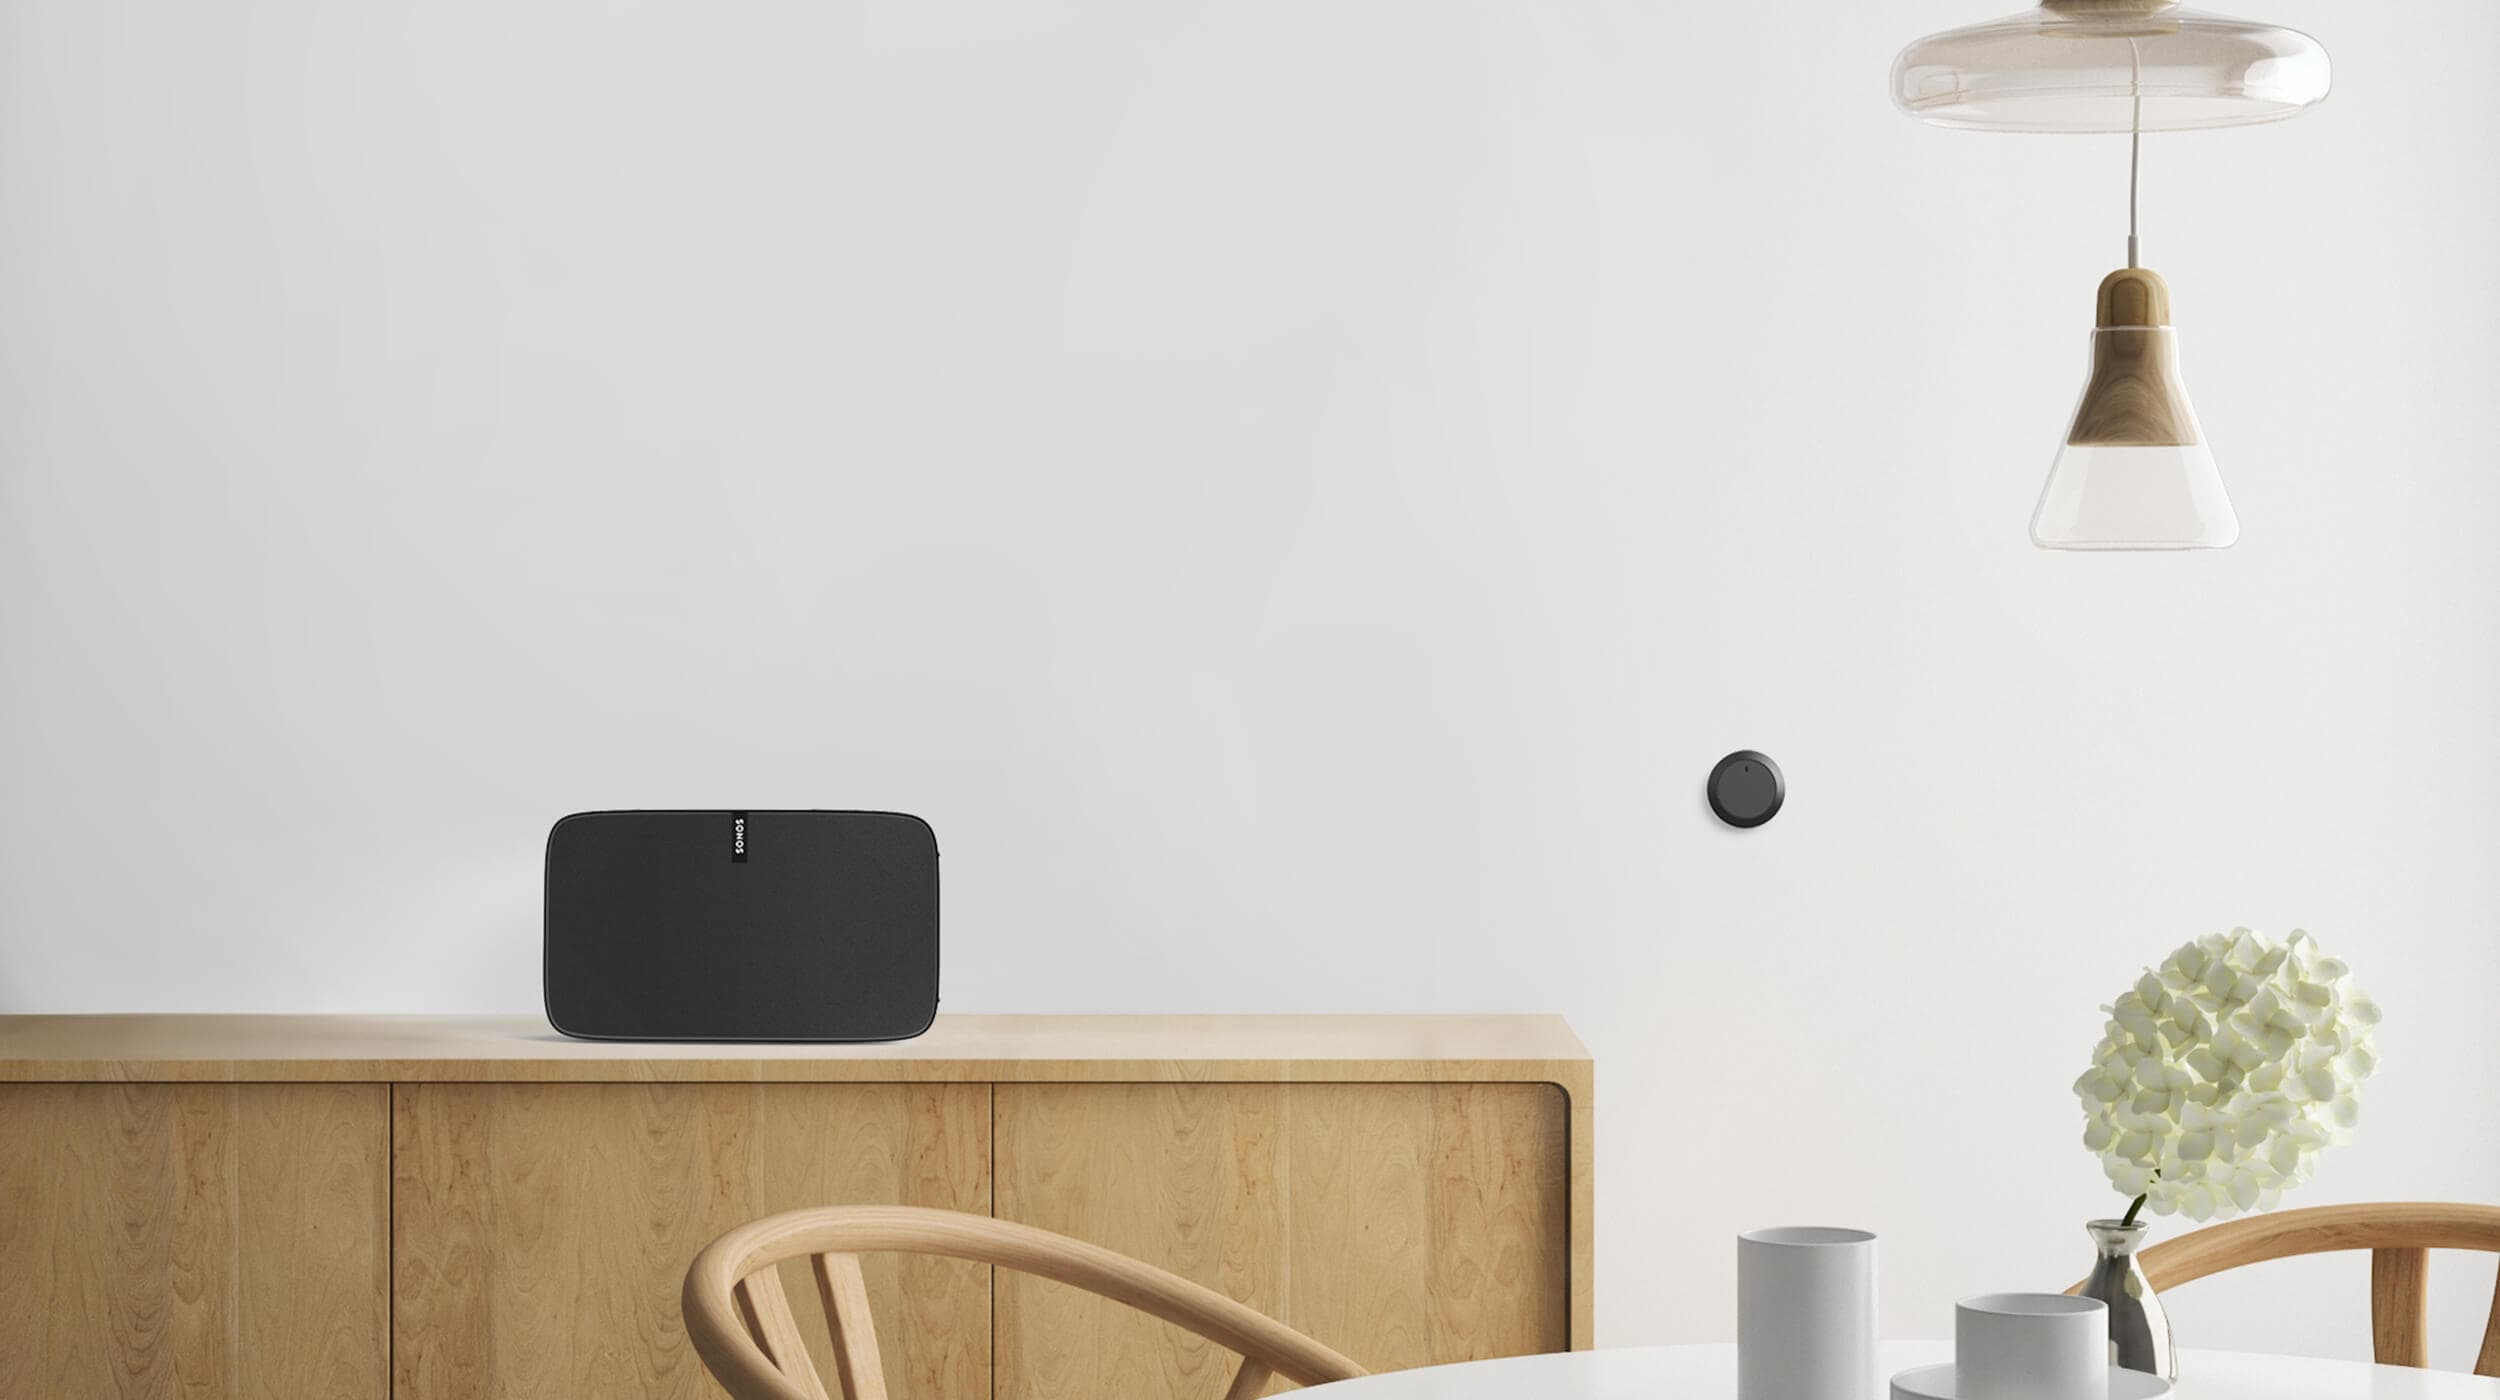 Nuimo black item on a white stylish table with Sonos speaker in the background